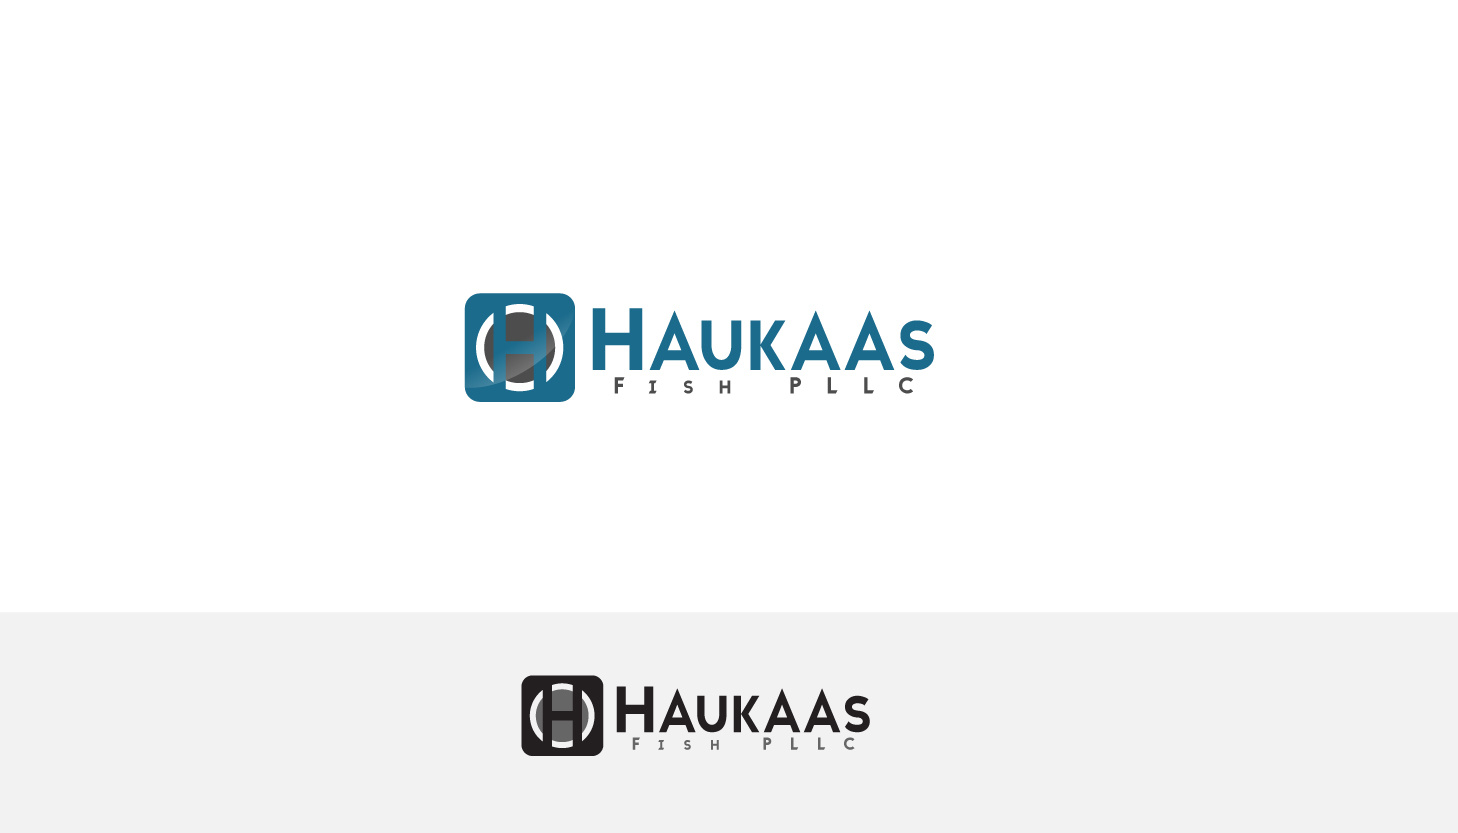 Law firm logo design for haukaas fish by parshdelhi for Fish law firm